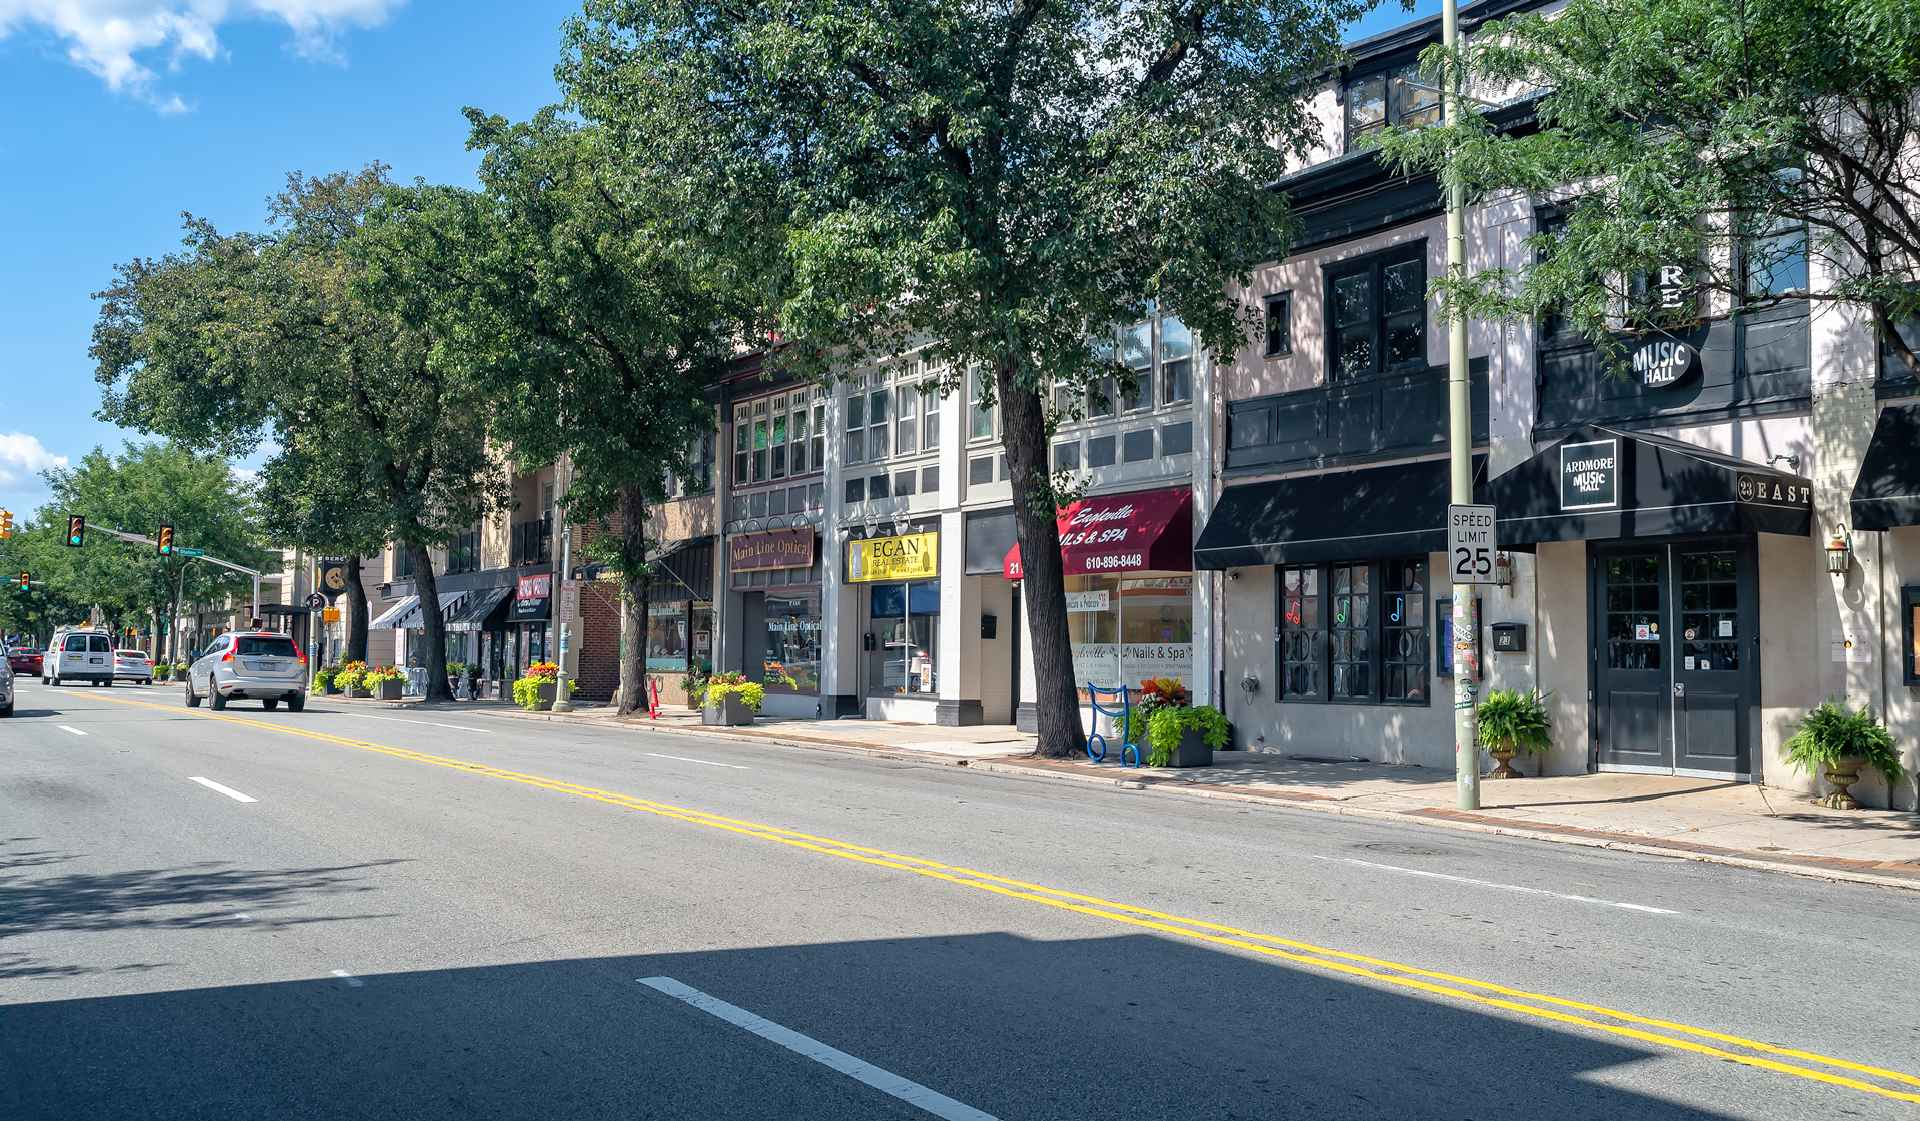 One Ardmore Place - Luxury Philadelphia Apartments - lancaster street shops